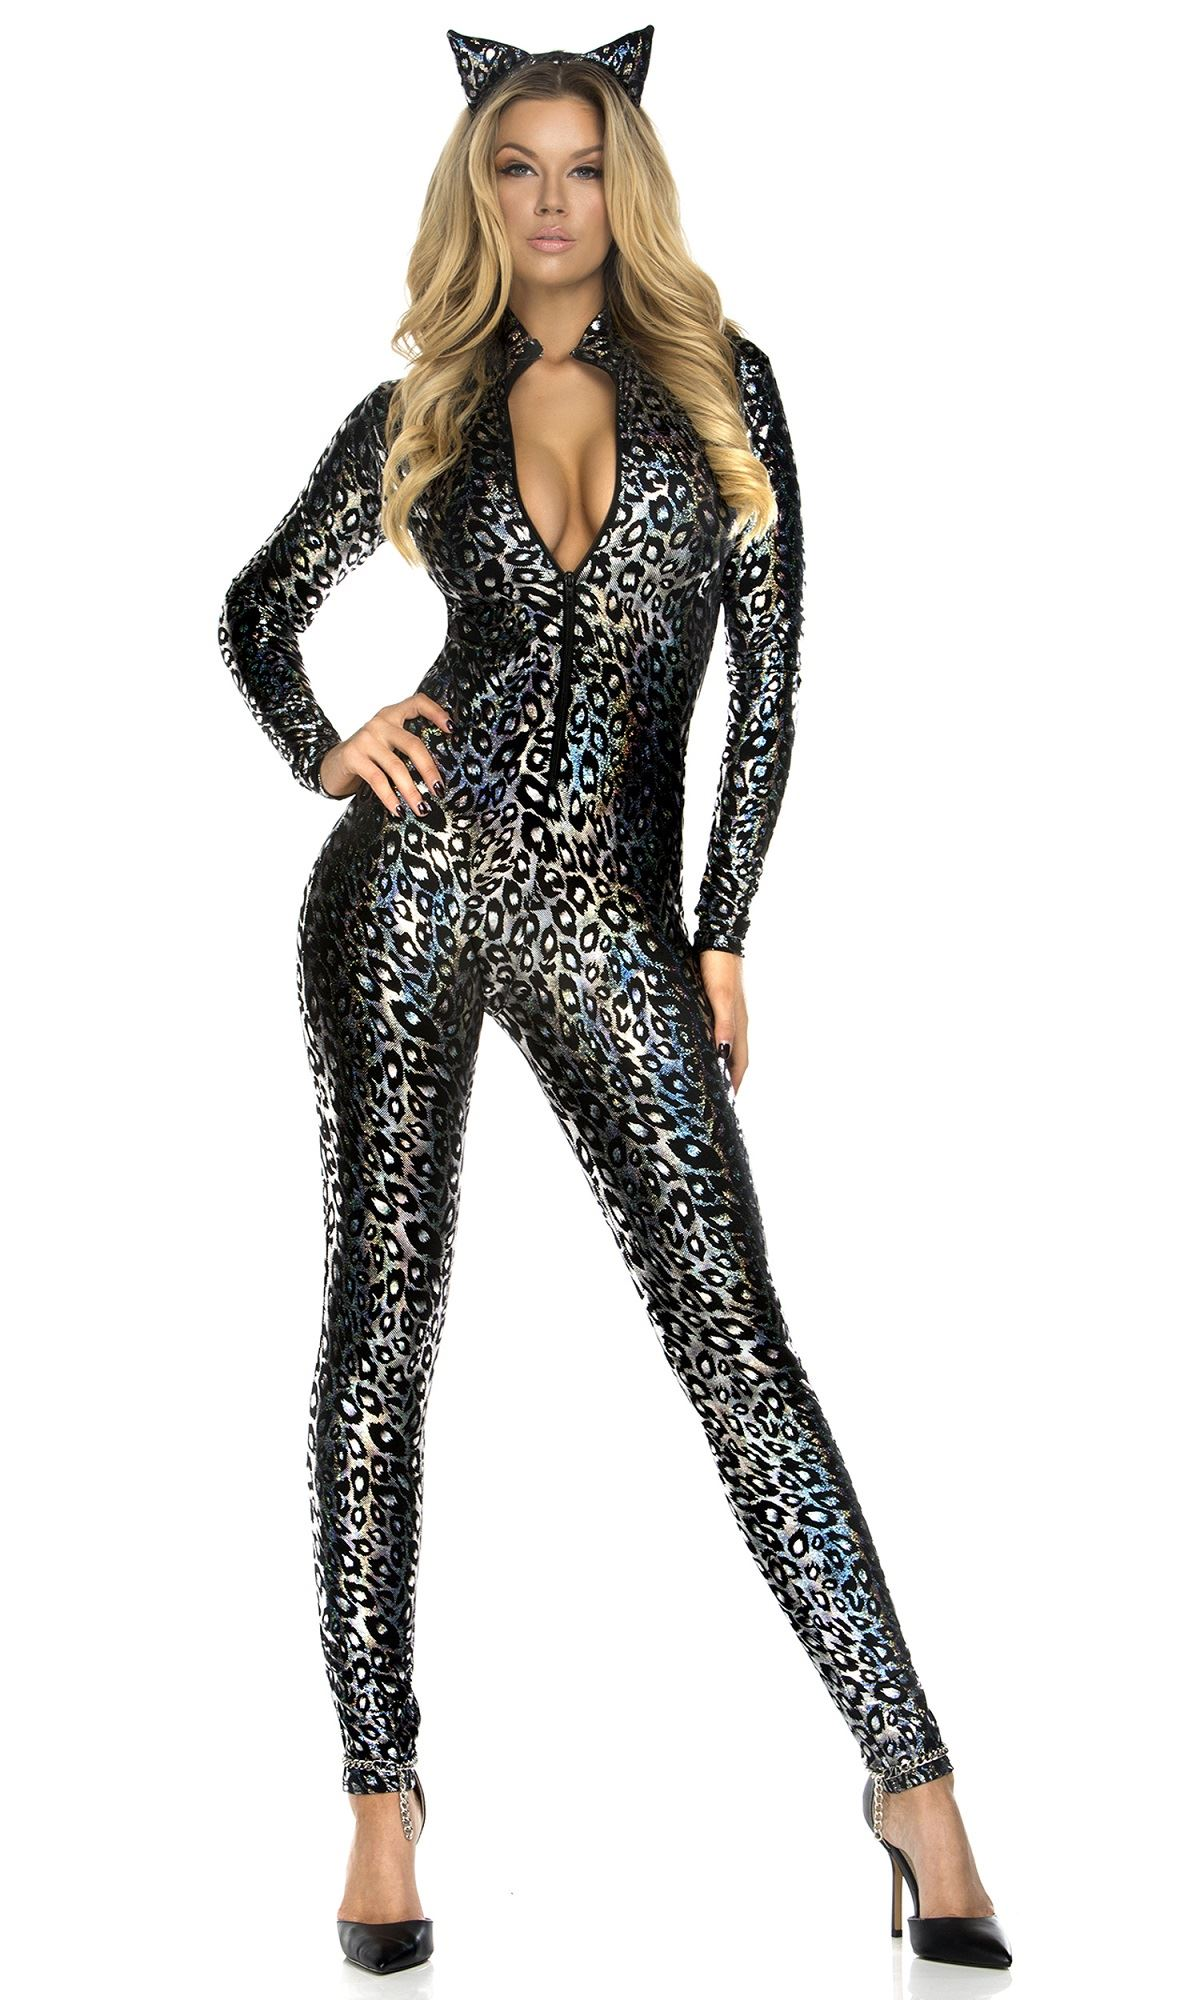 Sexy Animal Urban Jungle Leopard Print Cat Cheetah Adult Halloween Costume-Std See more like this Roma 2 Piece Cheeky Cheetah Leopard Sexy Cougar Bodysuit Halloween Costume MED Pre-Owned.